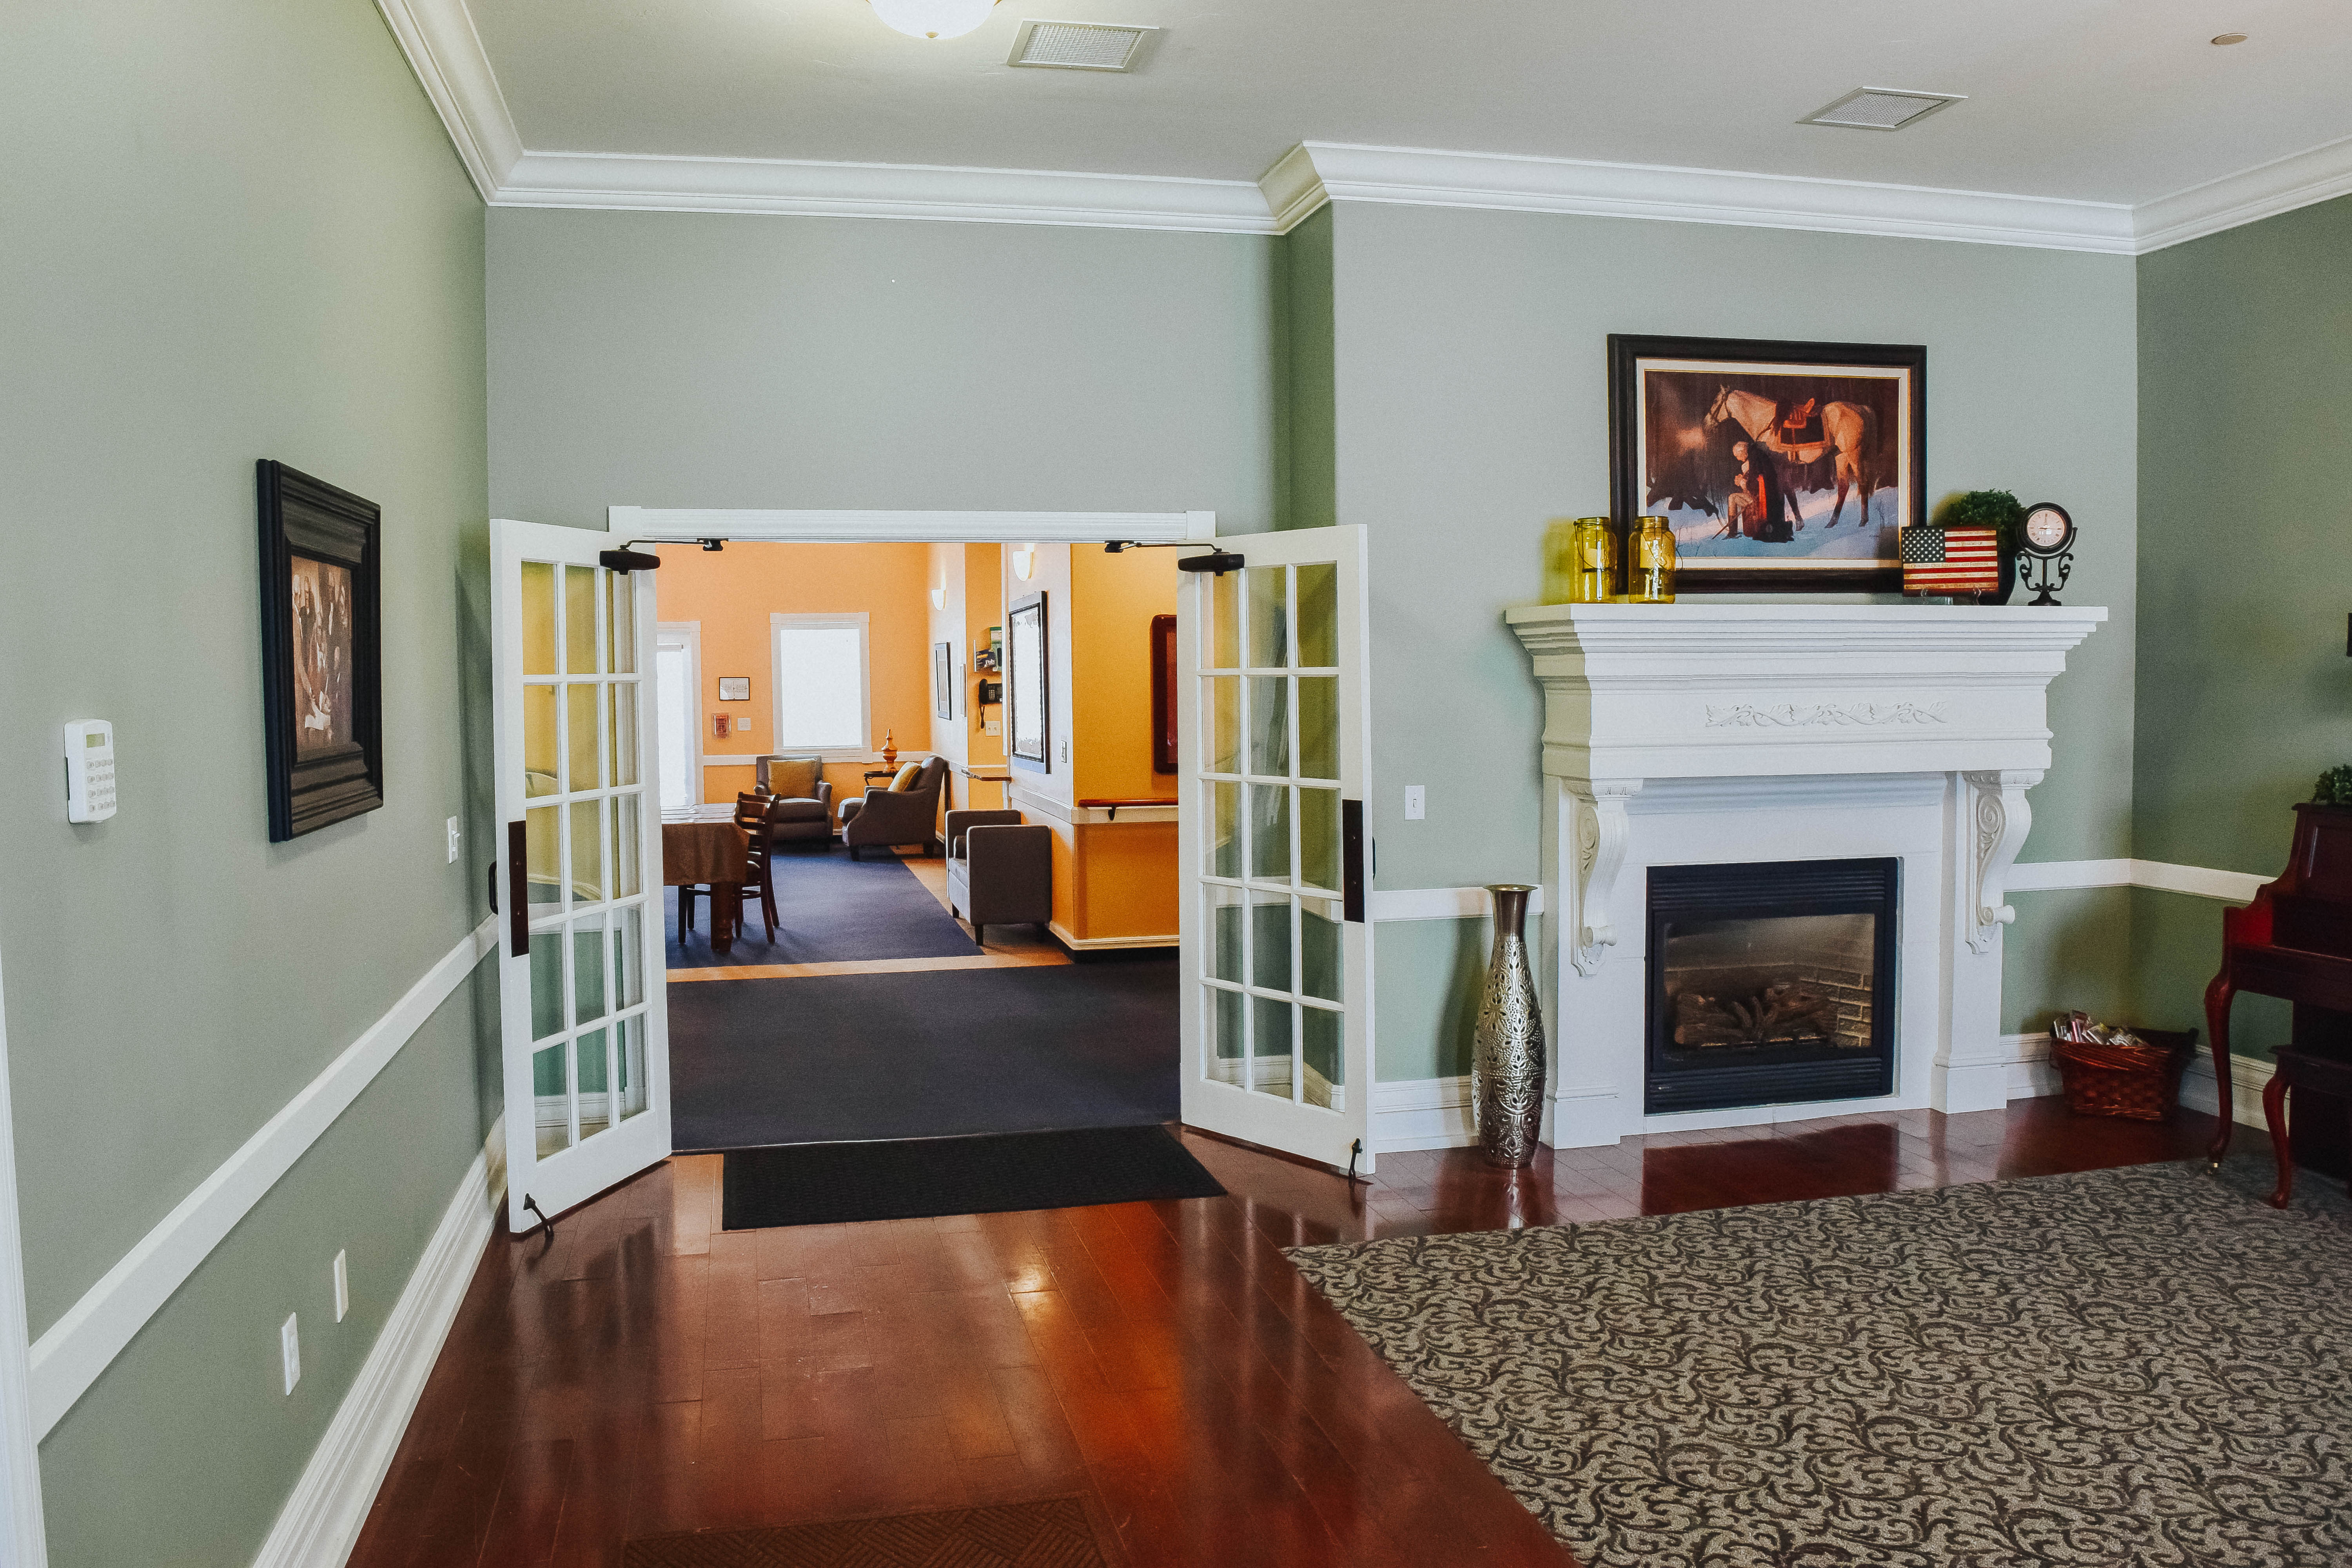 Tambree Meadows Assisted Living Front Room